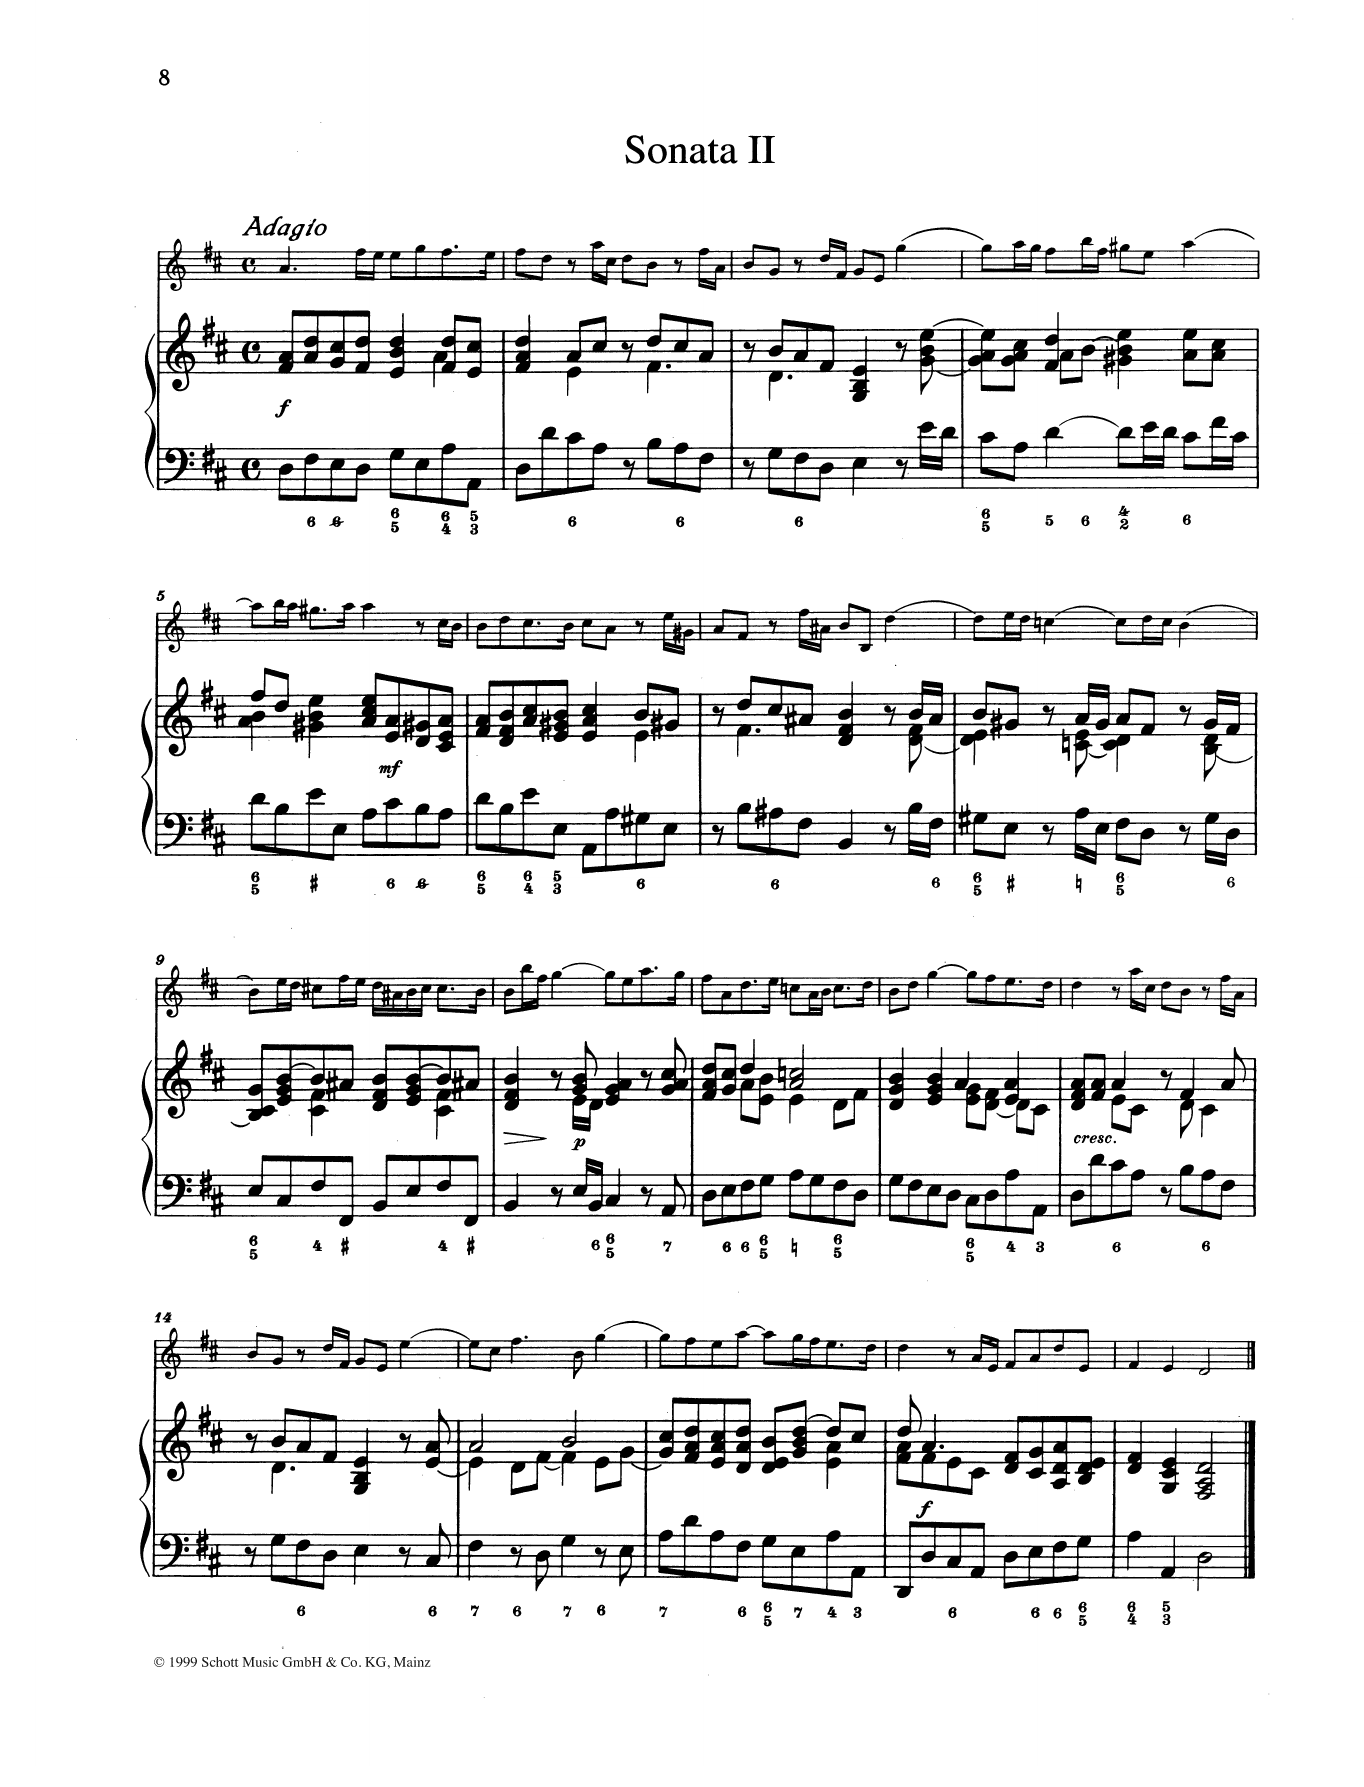 Sonata No. 2 Sheet Music